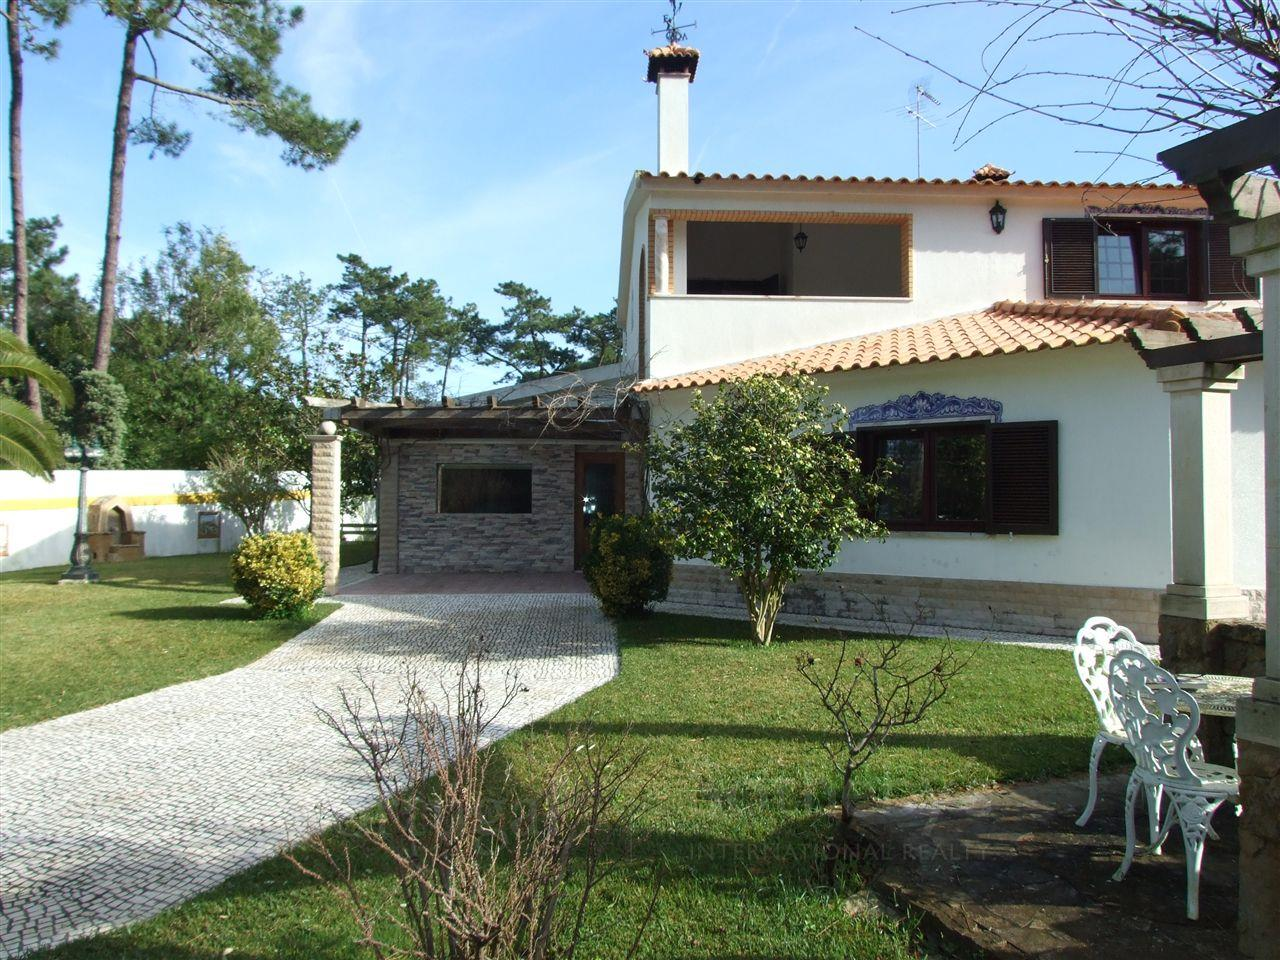 Maison unifamiliale pour l Vente à Detached house, 5 bedrooms, for Sale Sintra, Lisbonne, Portugal